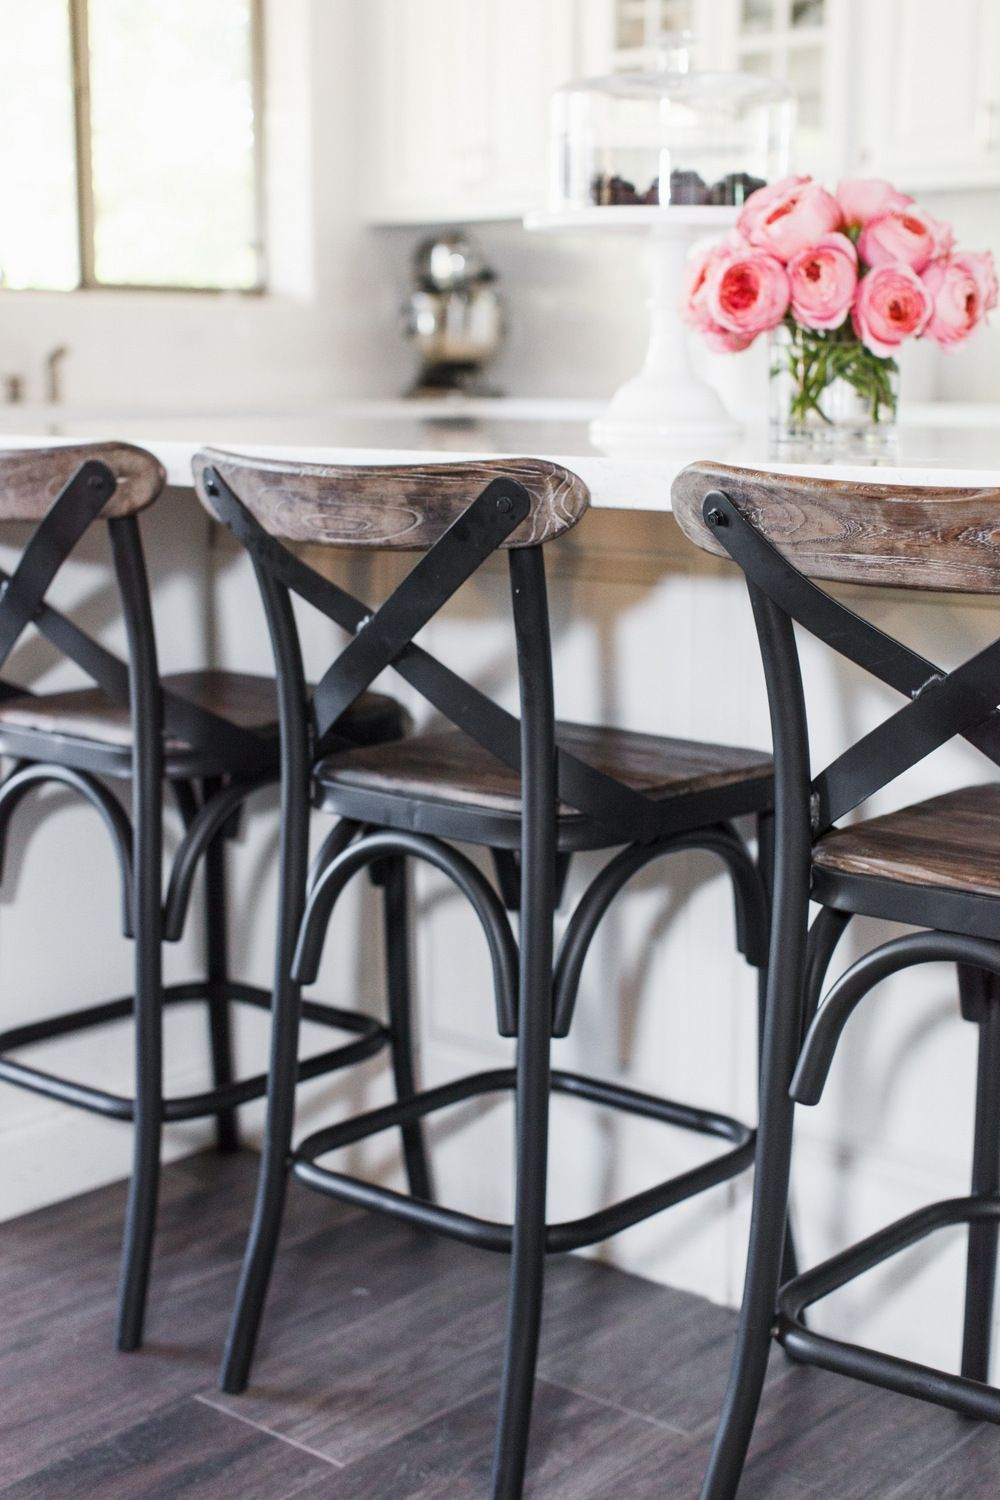 Awesome Farmhouse Kitchen Stools Stools For Kitchen Island